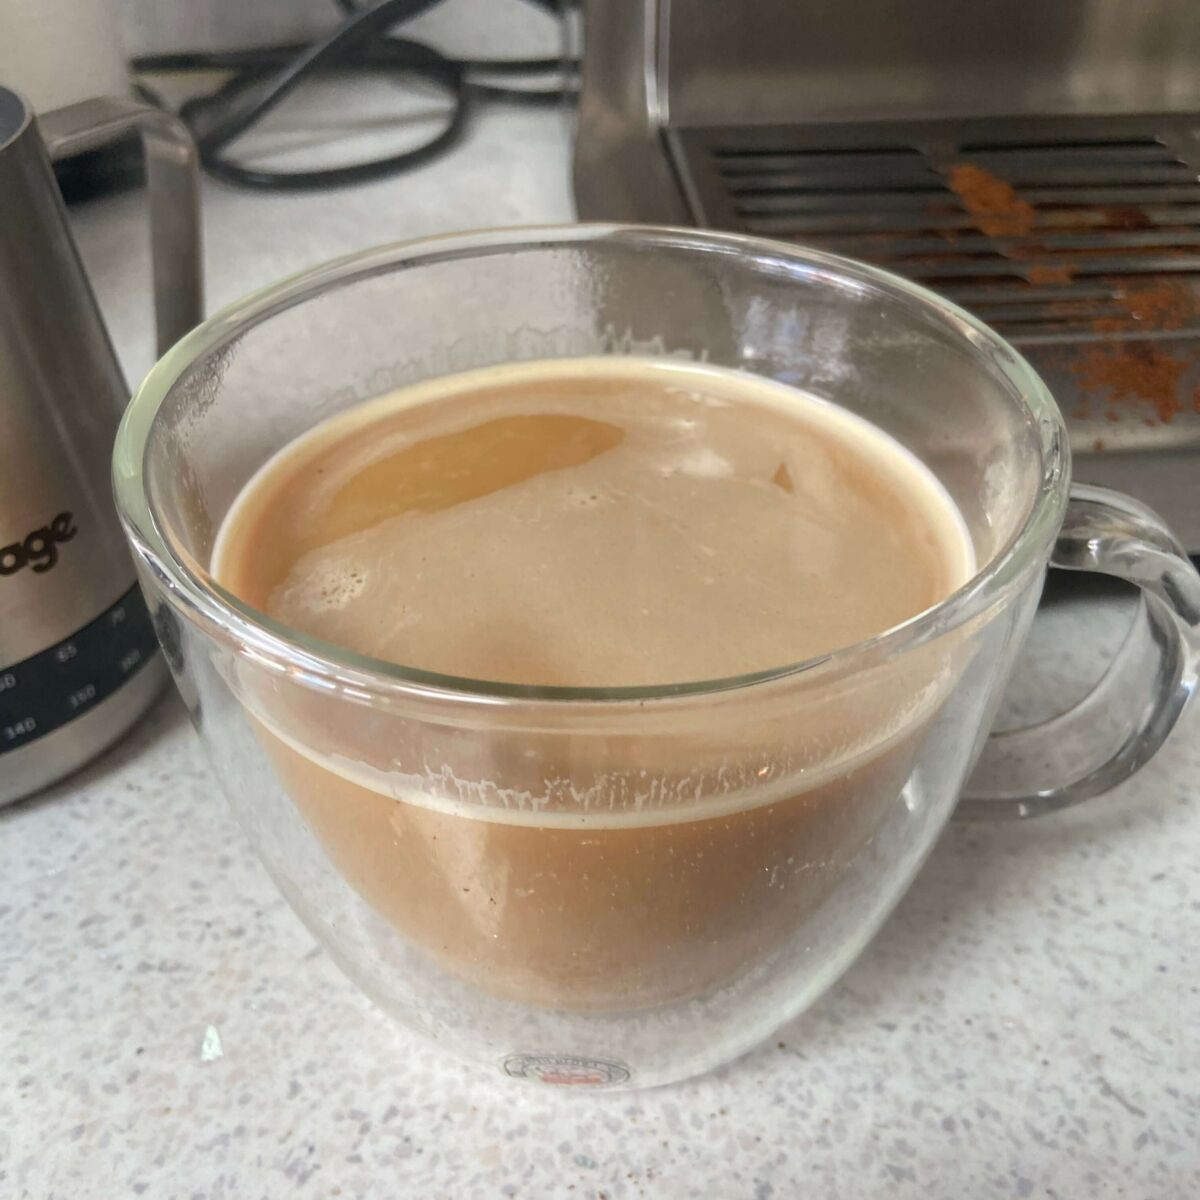 The Barista Express Makes Drinks Quickly